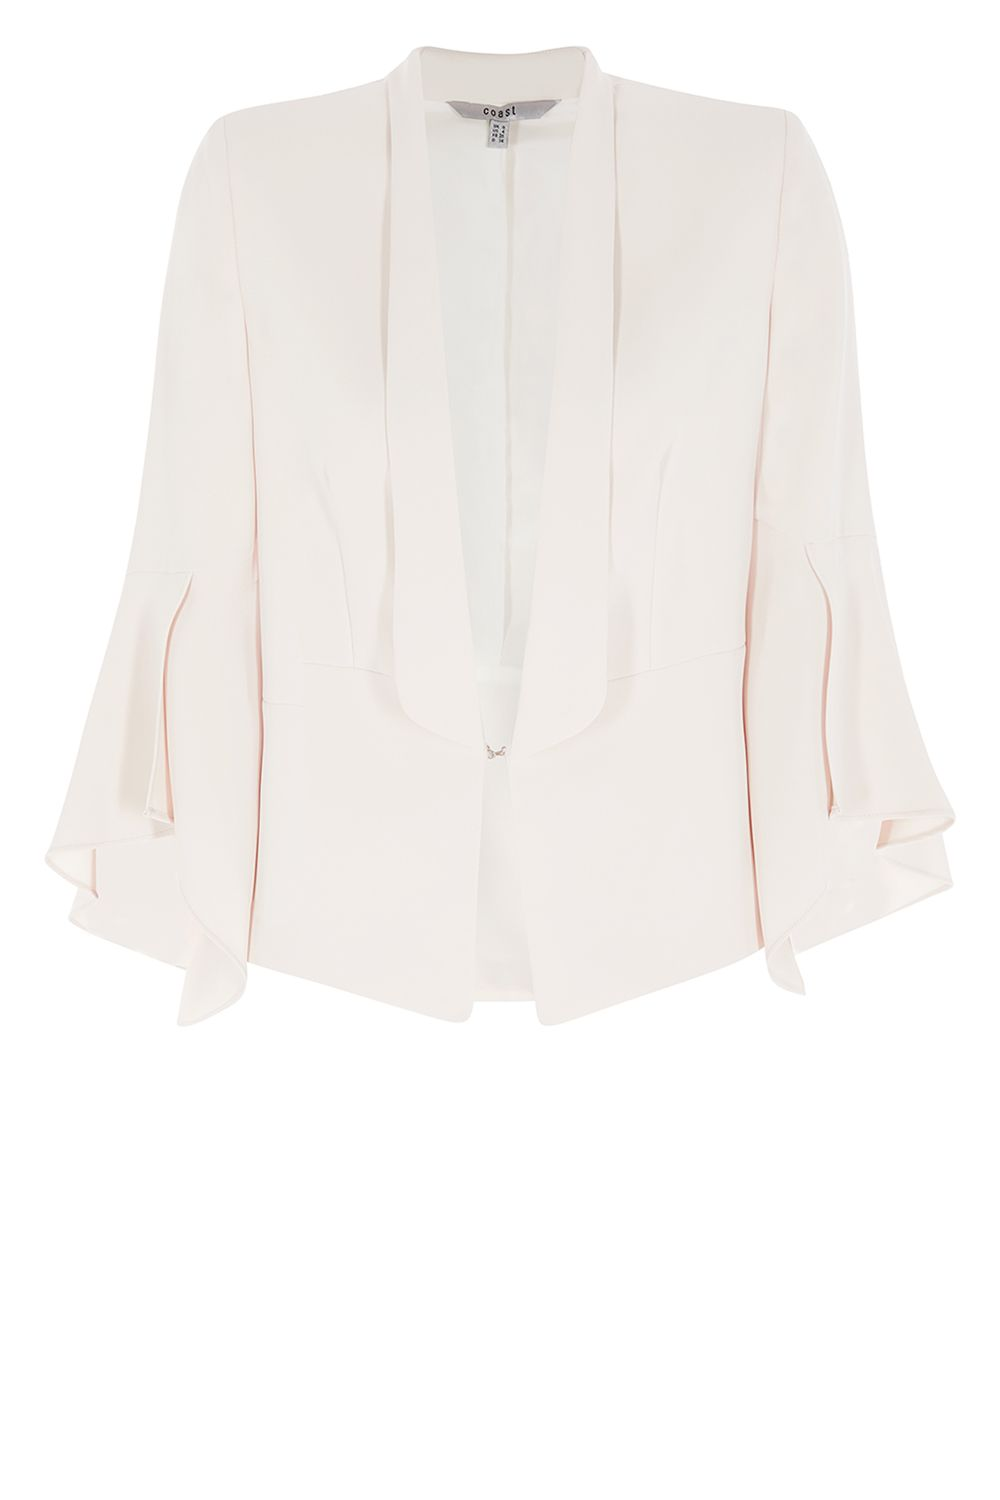 Coast Alba Jacket, Cream